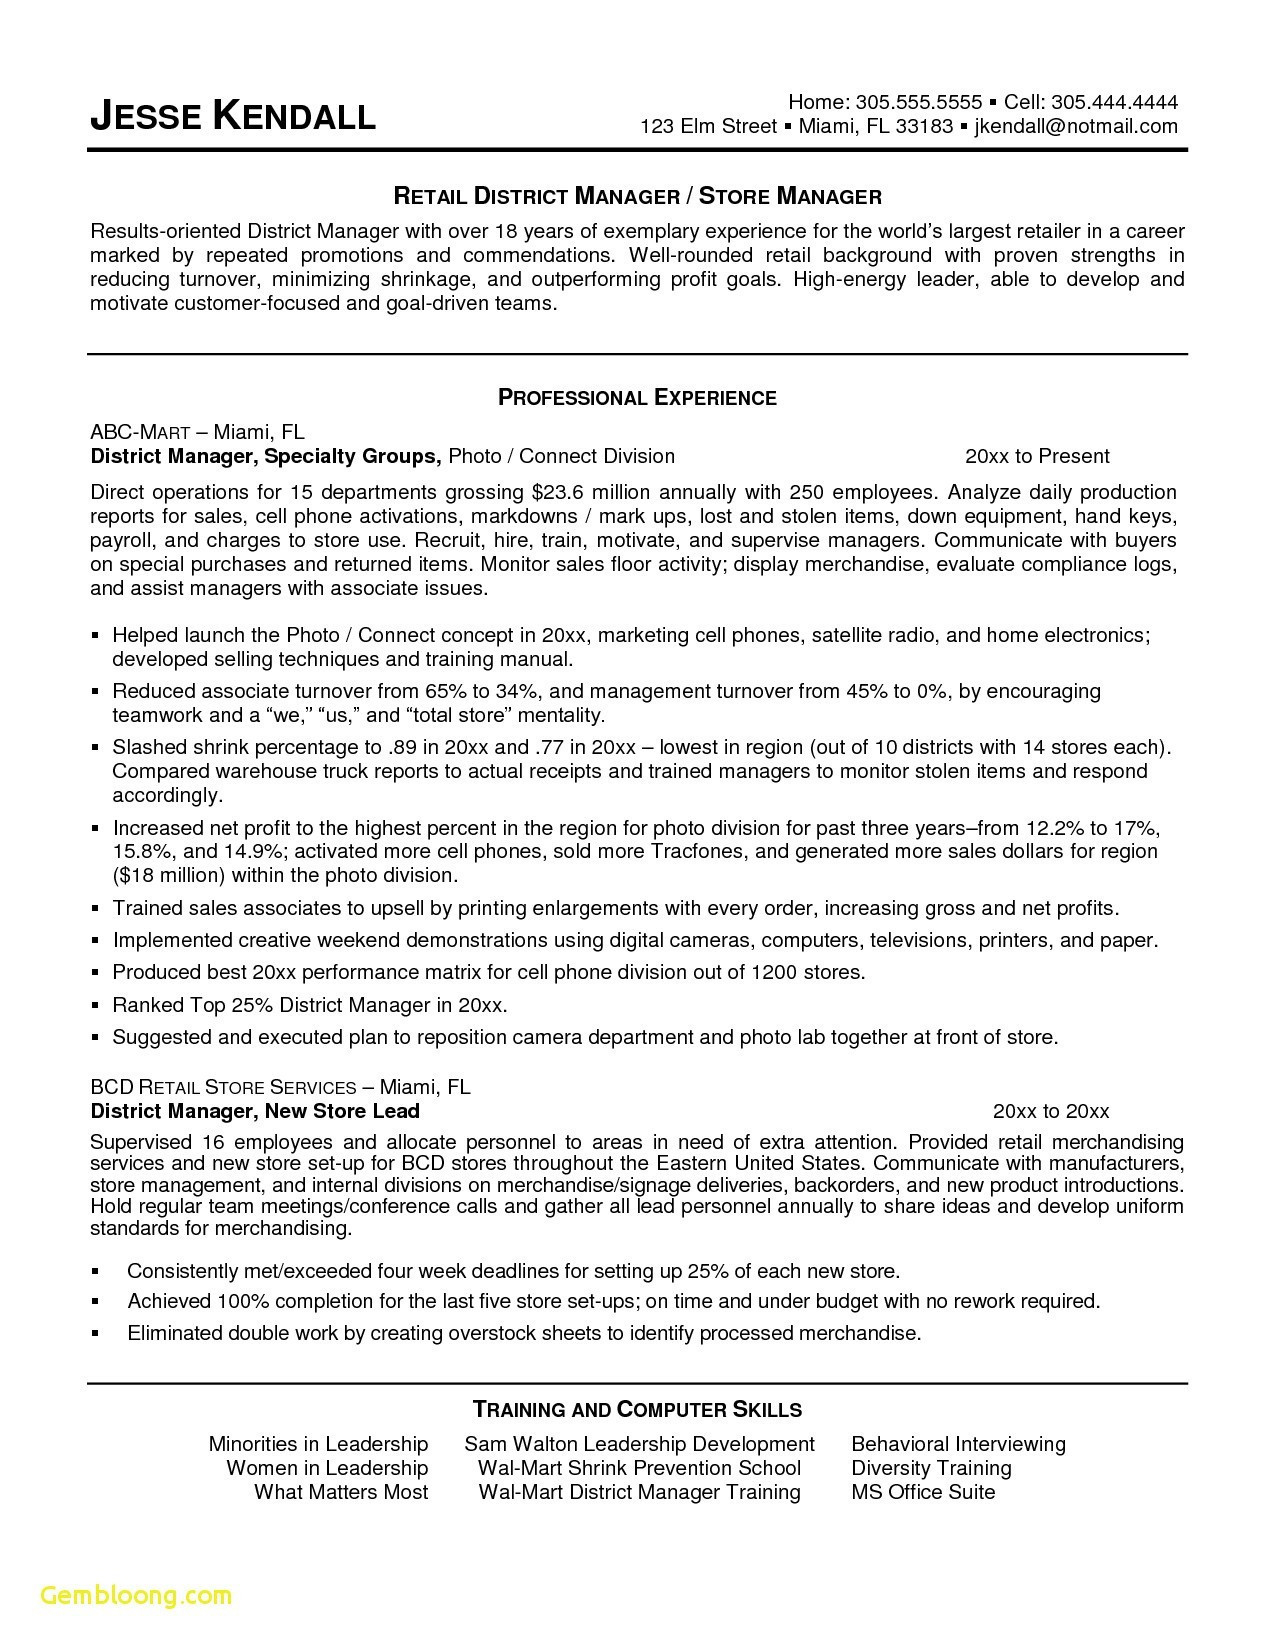 Contract Manager Resume Sample - Showroom Sales Resume Awesome Retail Sales Manager Cv Examples